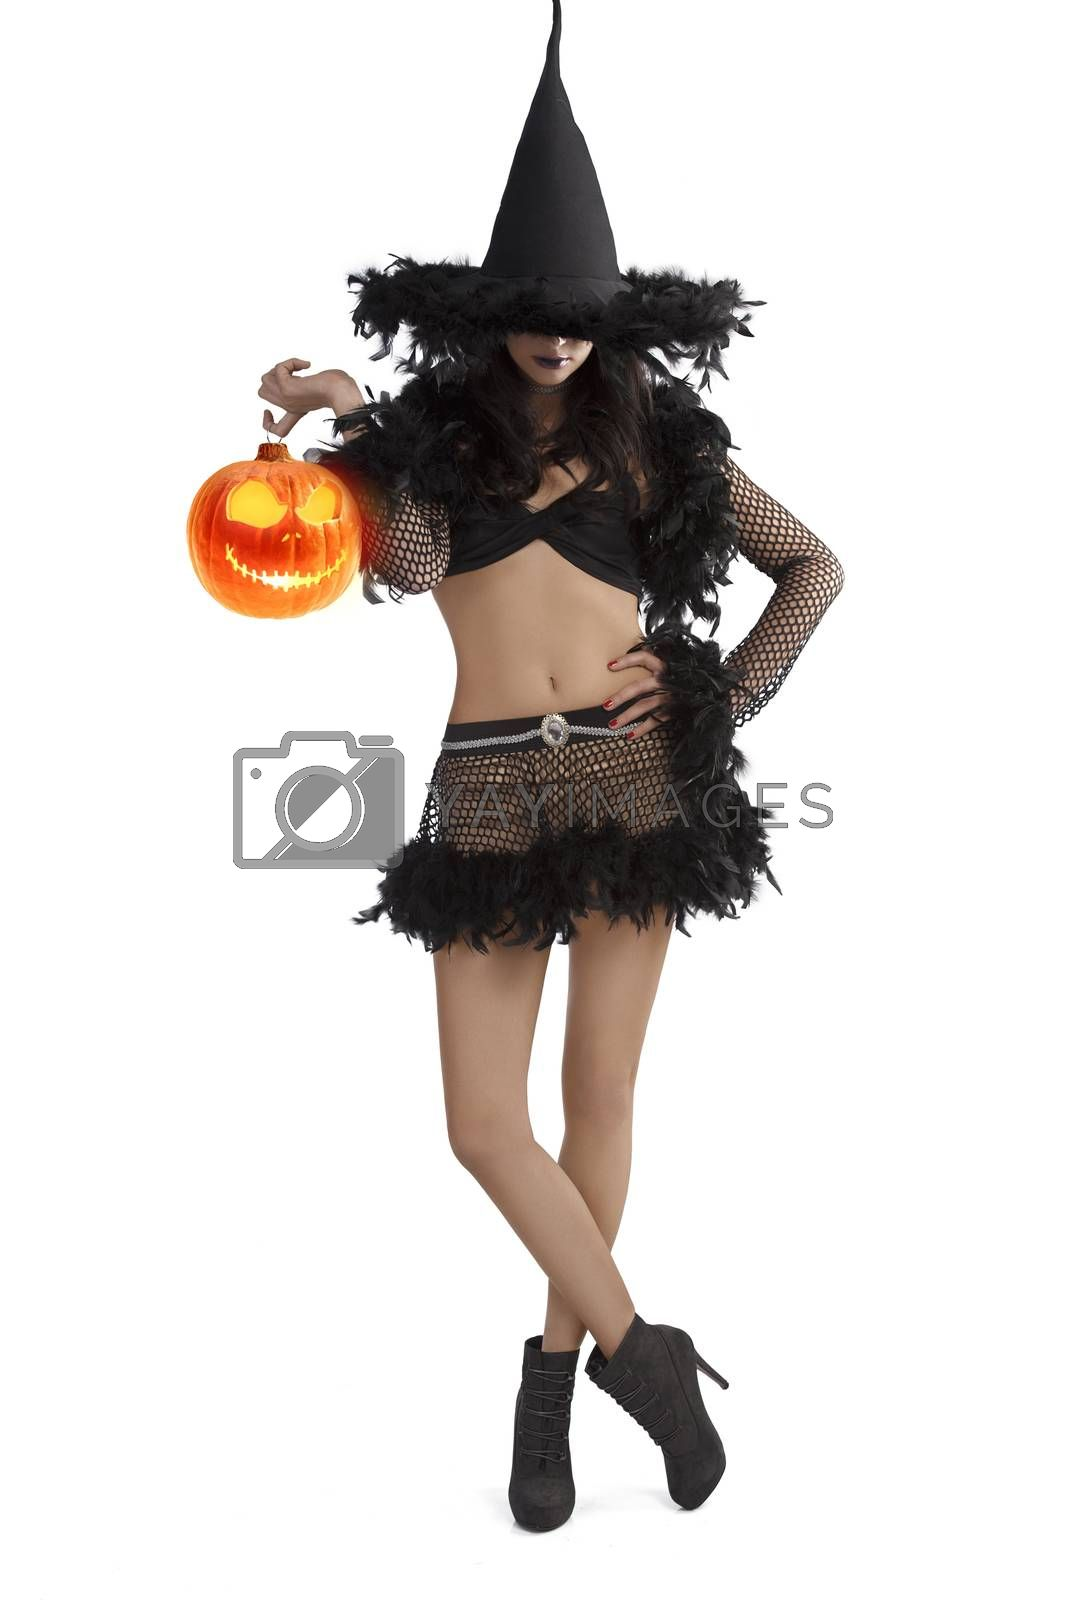 Royalty free image of girl in halloween dress standing with party ball by fotoCD